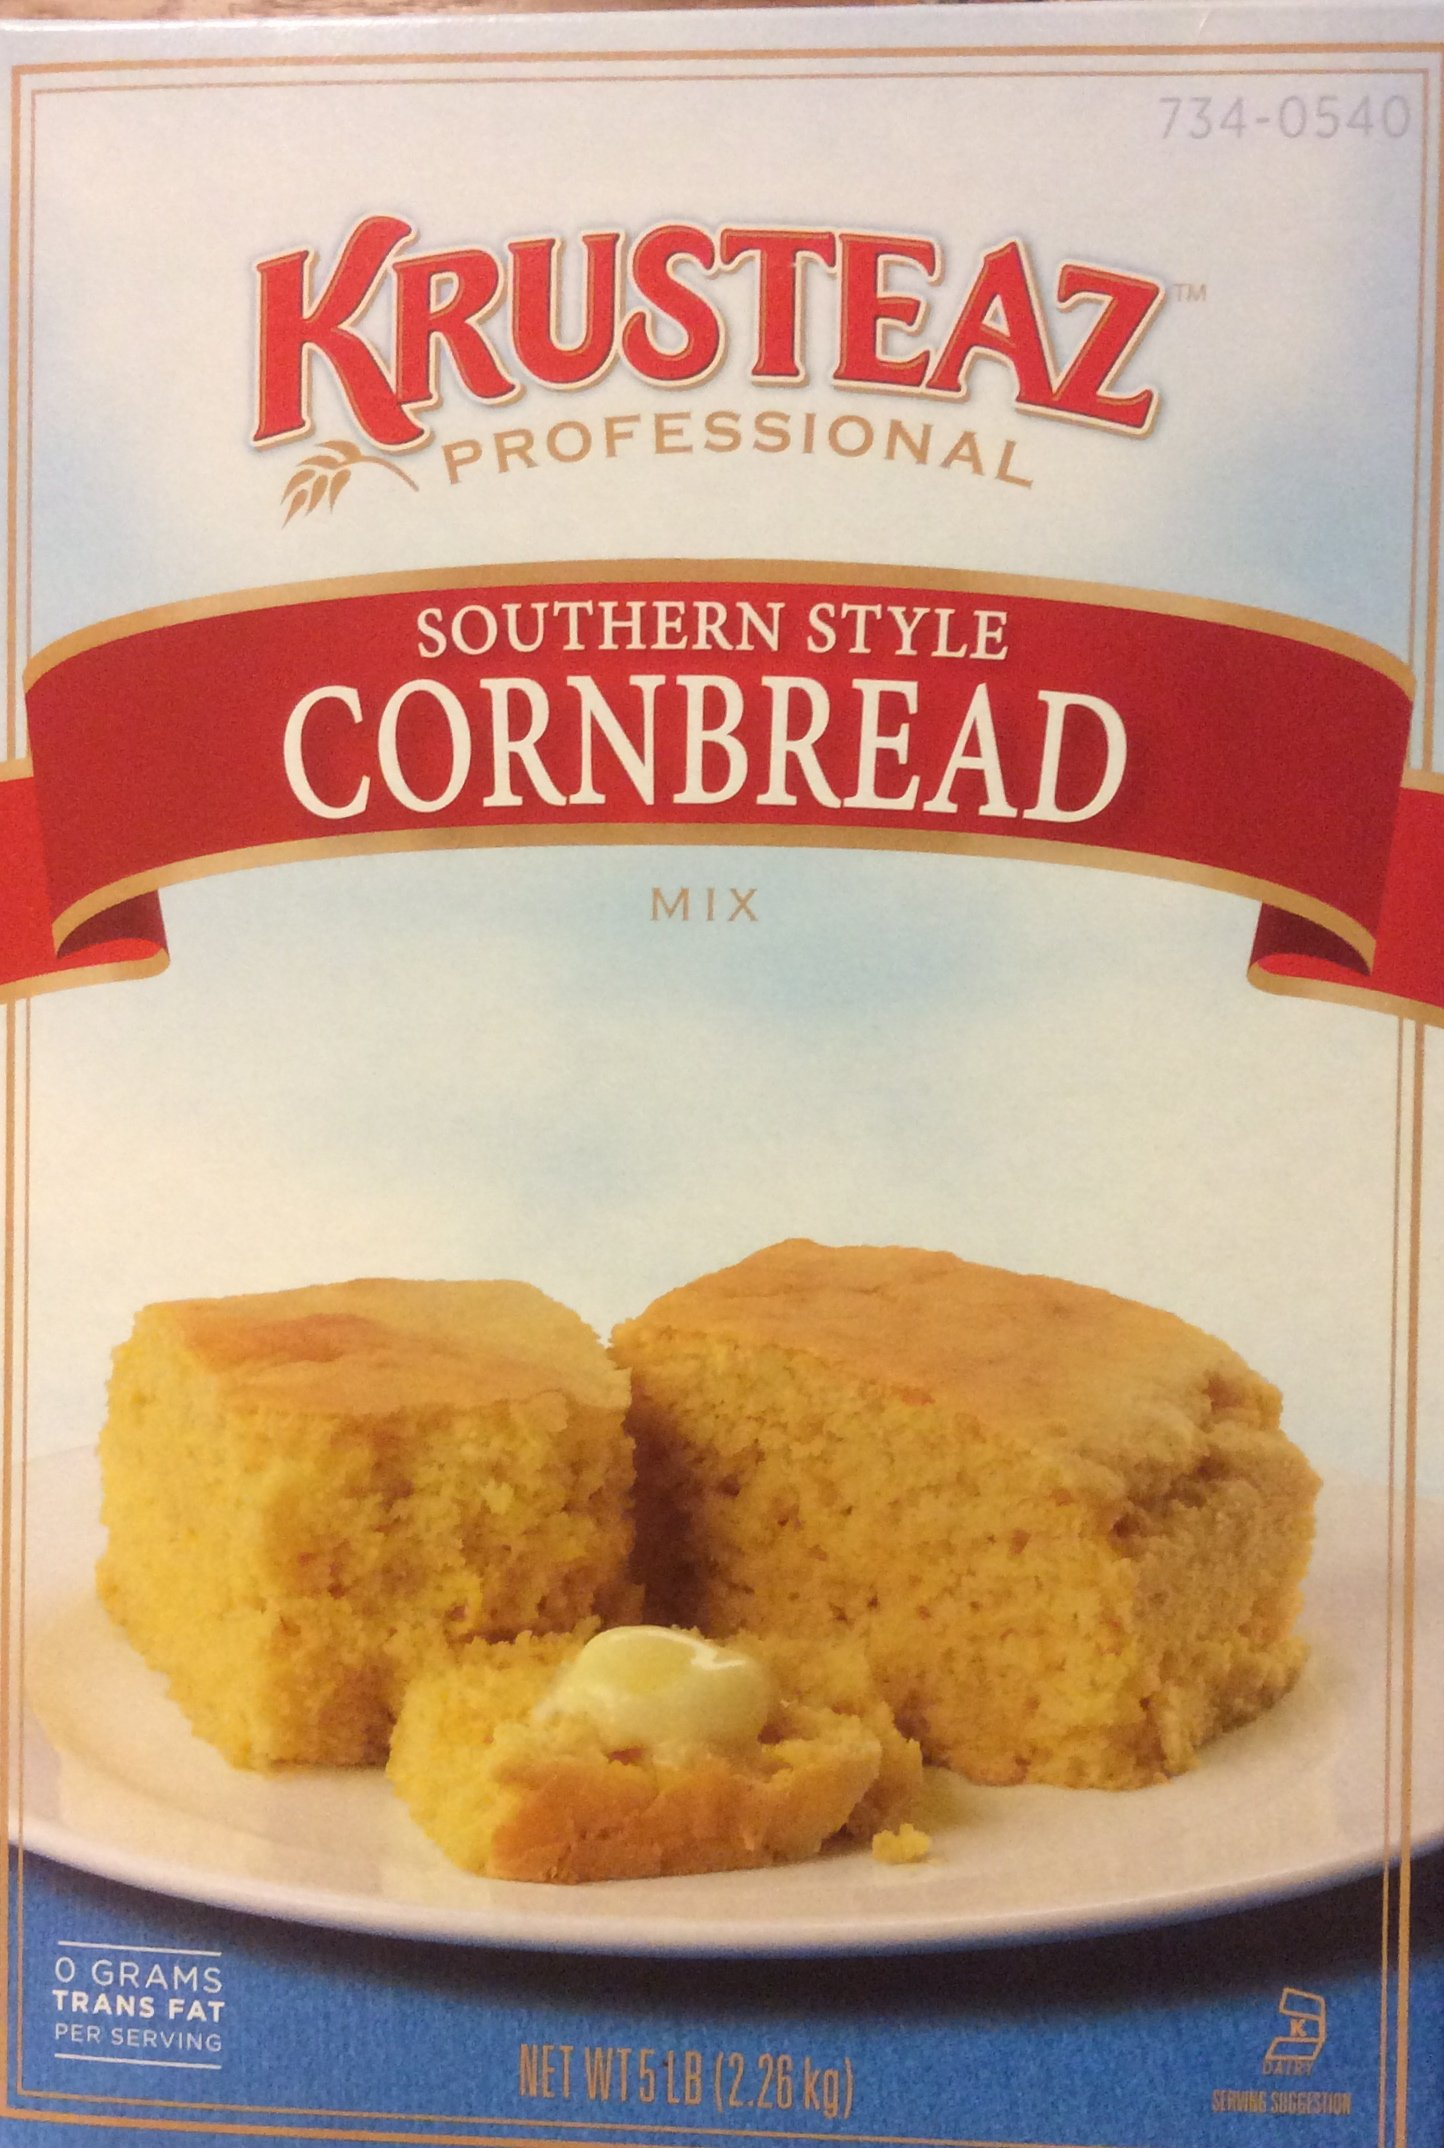 Krusteaz Old Fashioned SOUTHERN STYLE CORNBREAD Mix 5lbs. Restaurant Quality